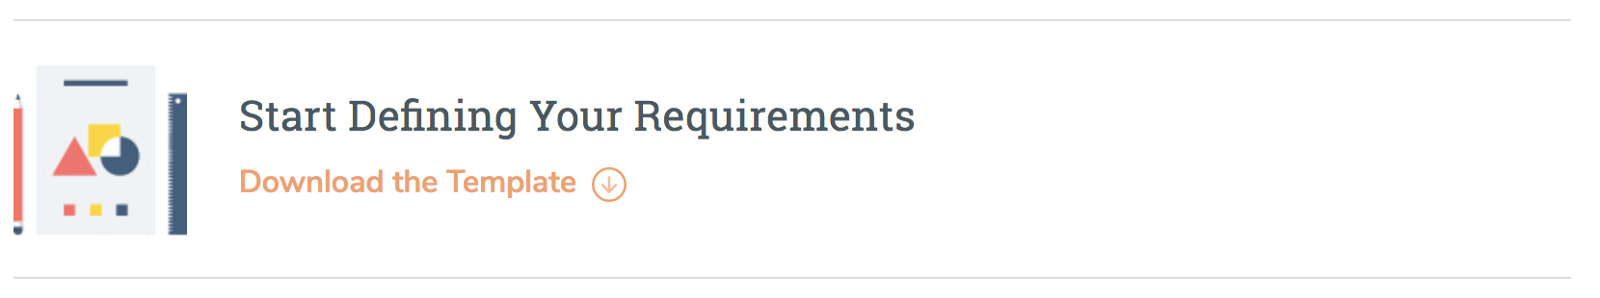 What Is A Requirements Gathering Template Worth MentorMate Medium - Requirements gathering